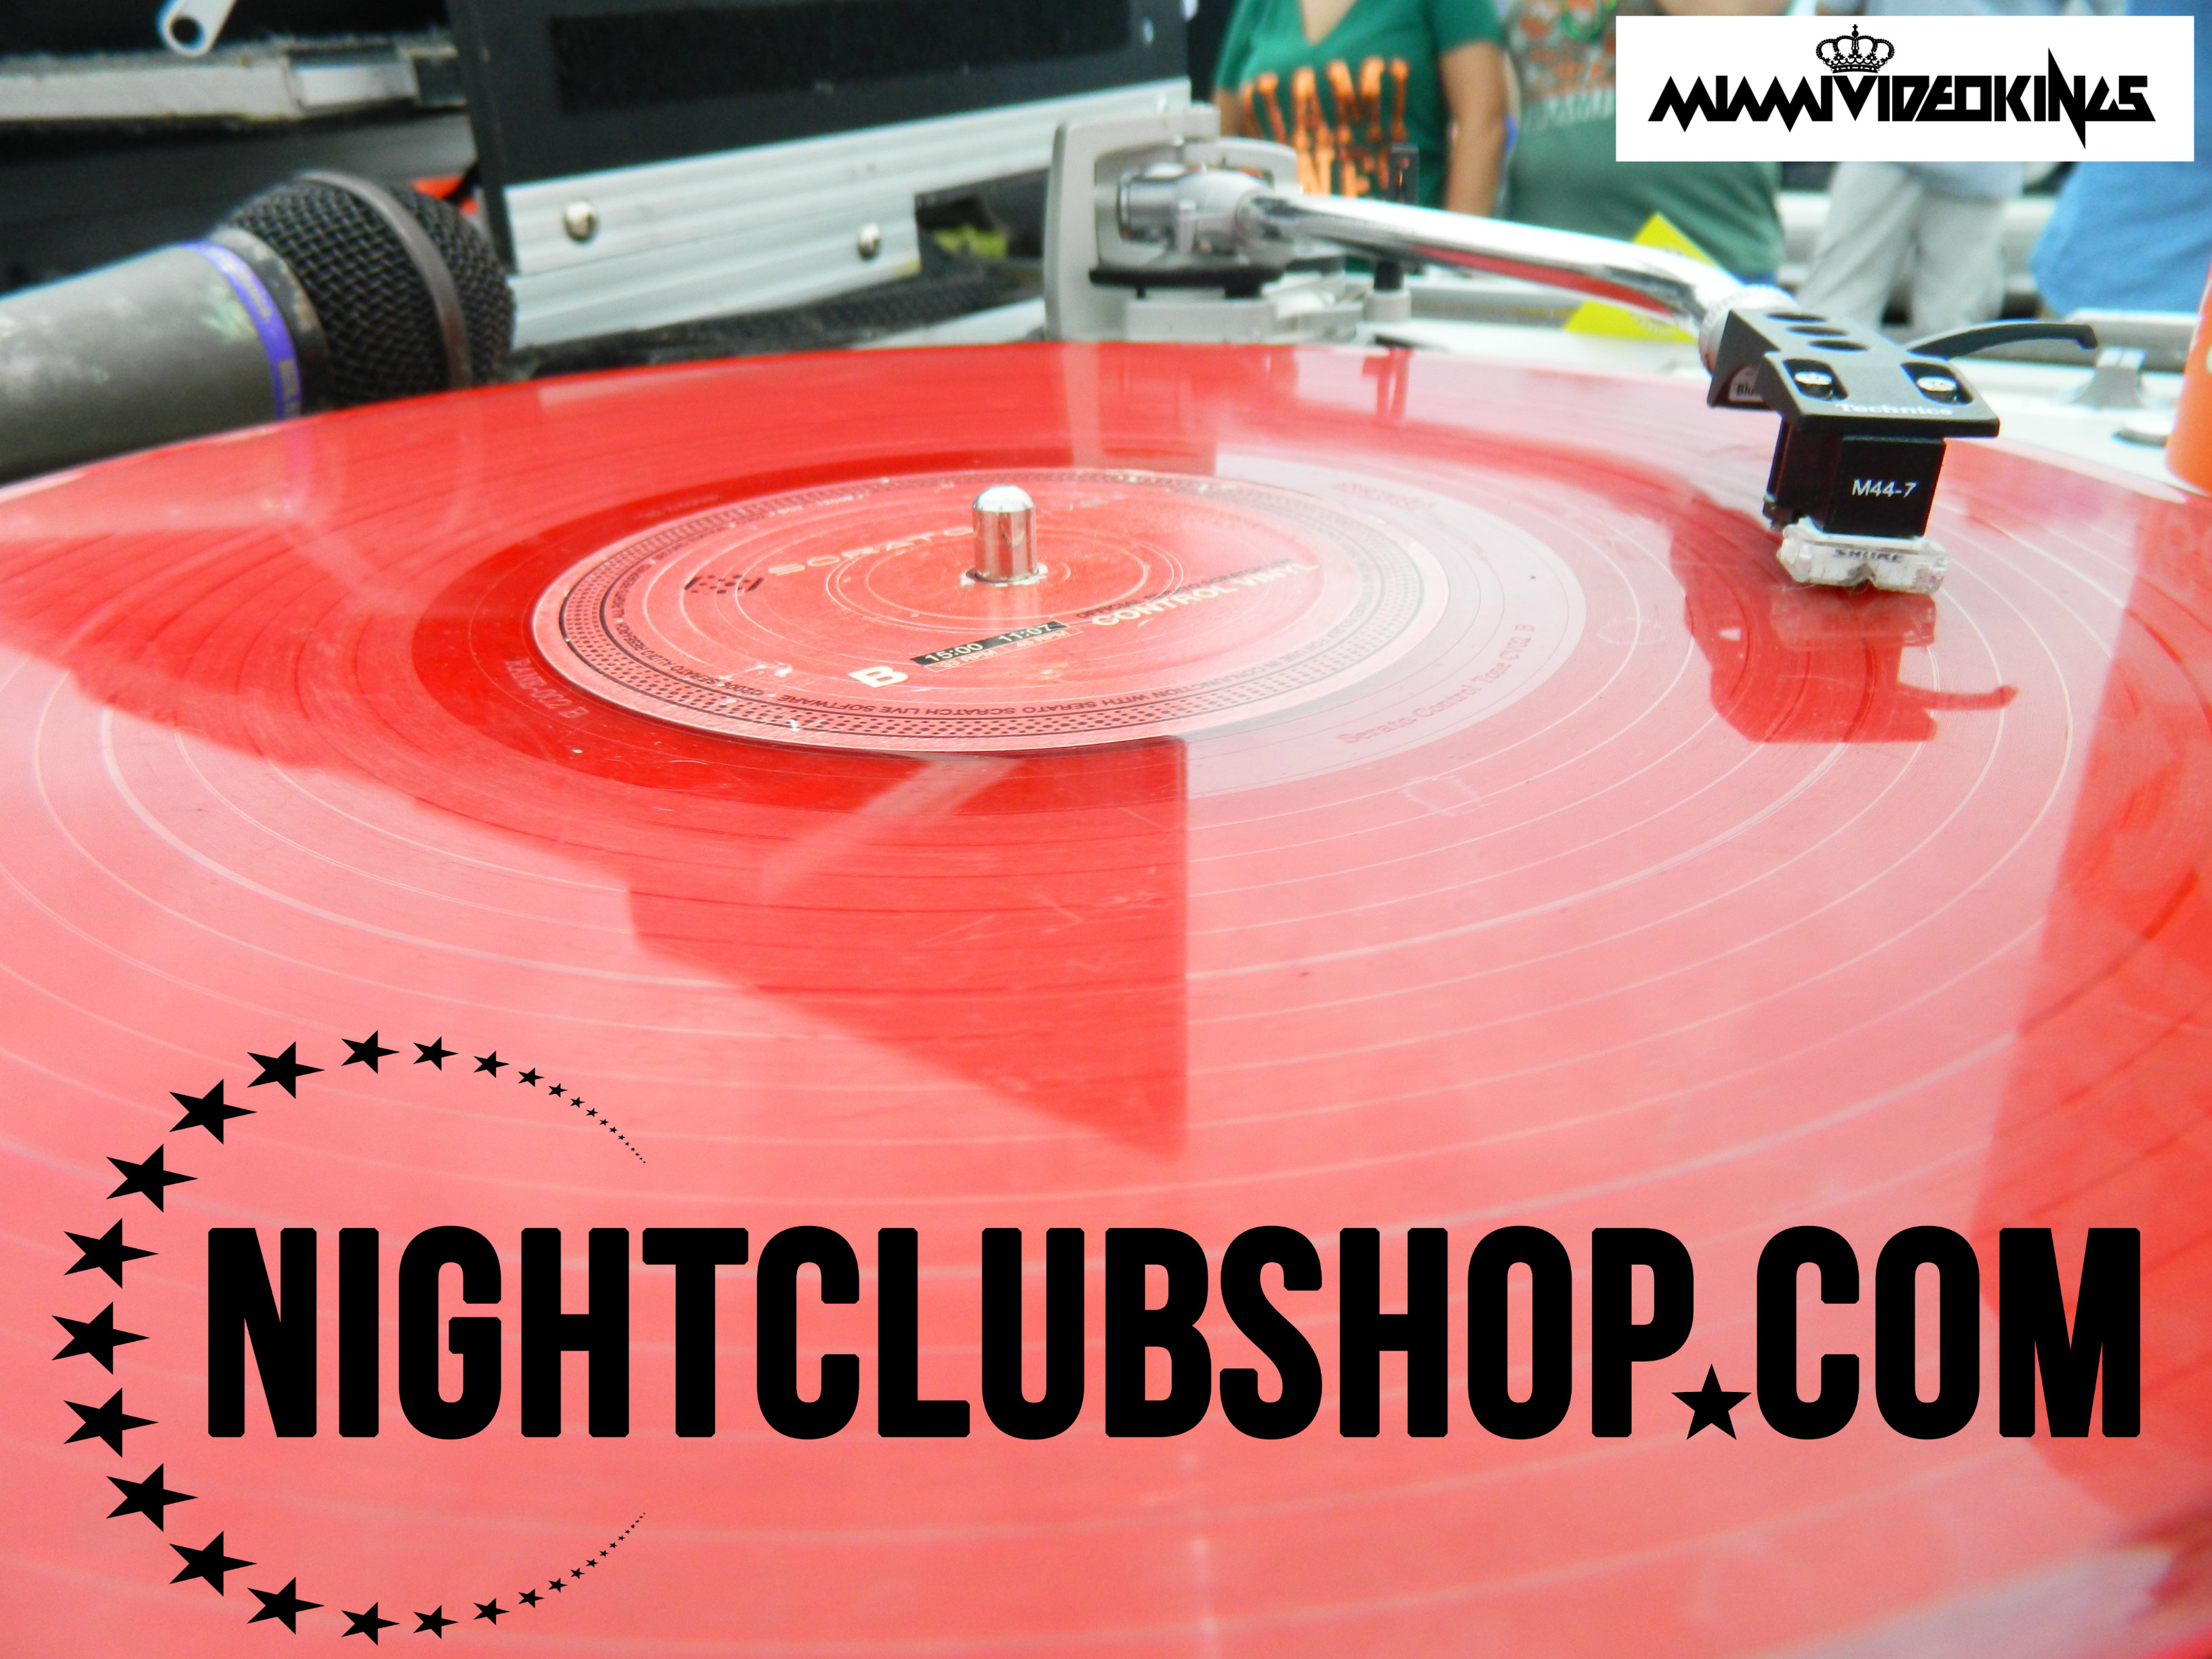 dj-section-products-wholesale.jpg